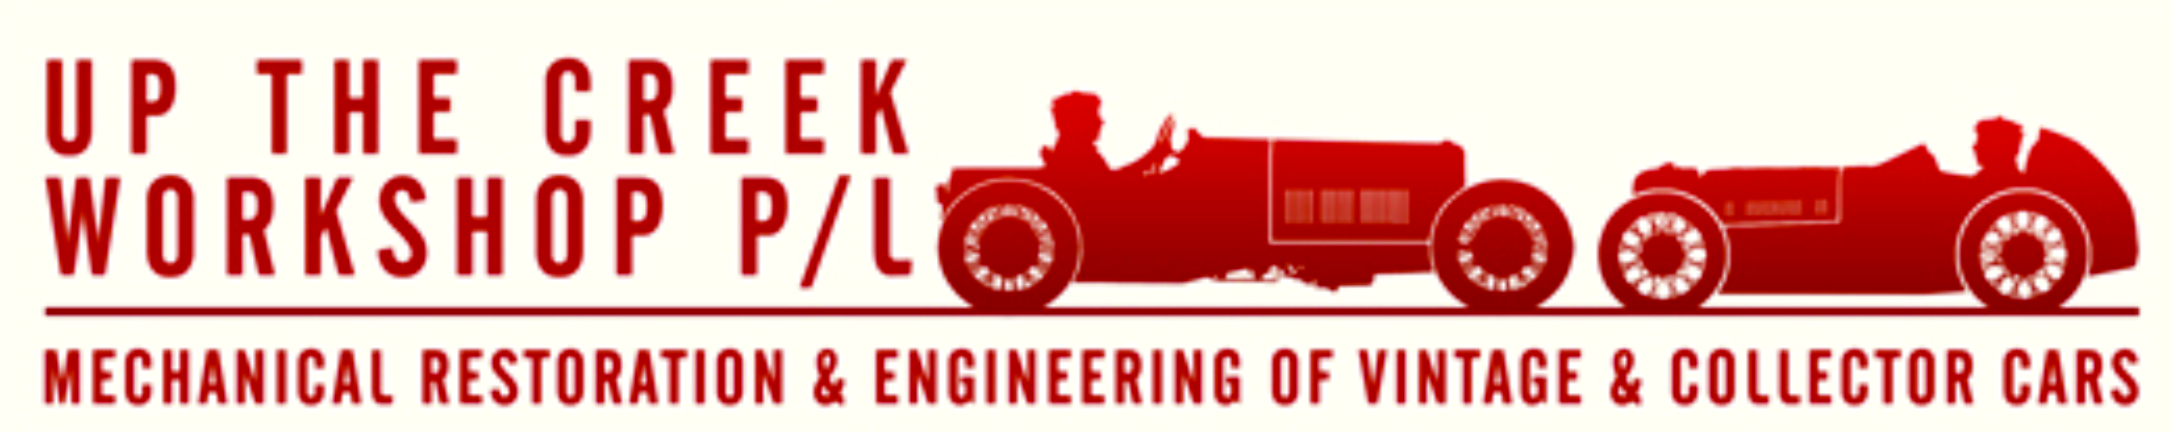 "Logo of ""Up the Creek Workshop P/L"" - Mechanical Restoration and Engineering of Vintage and Collector Cars."